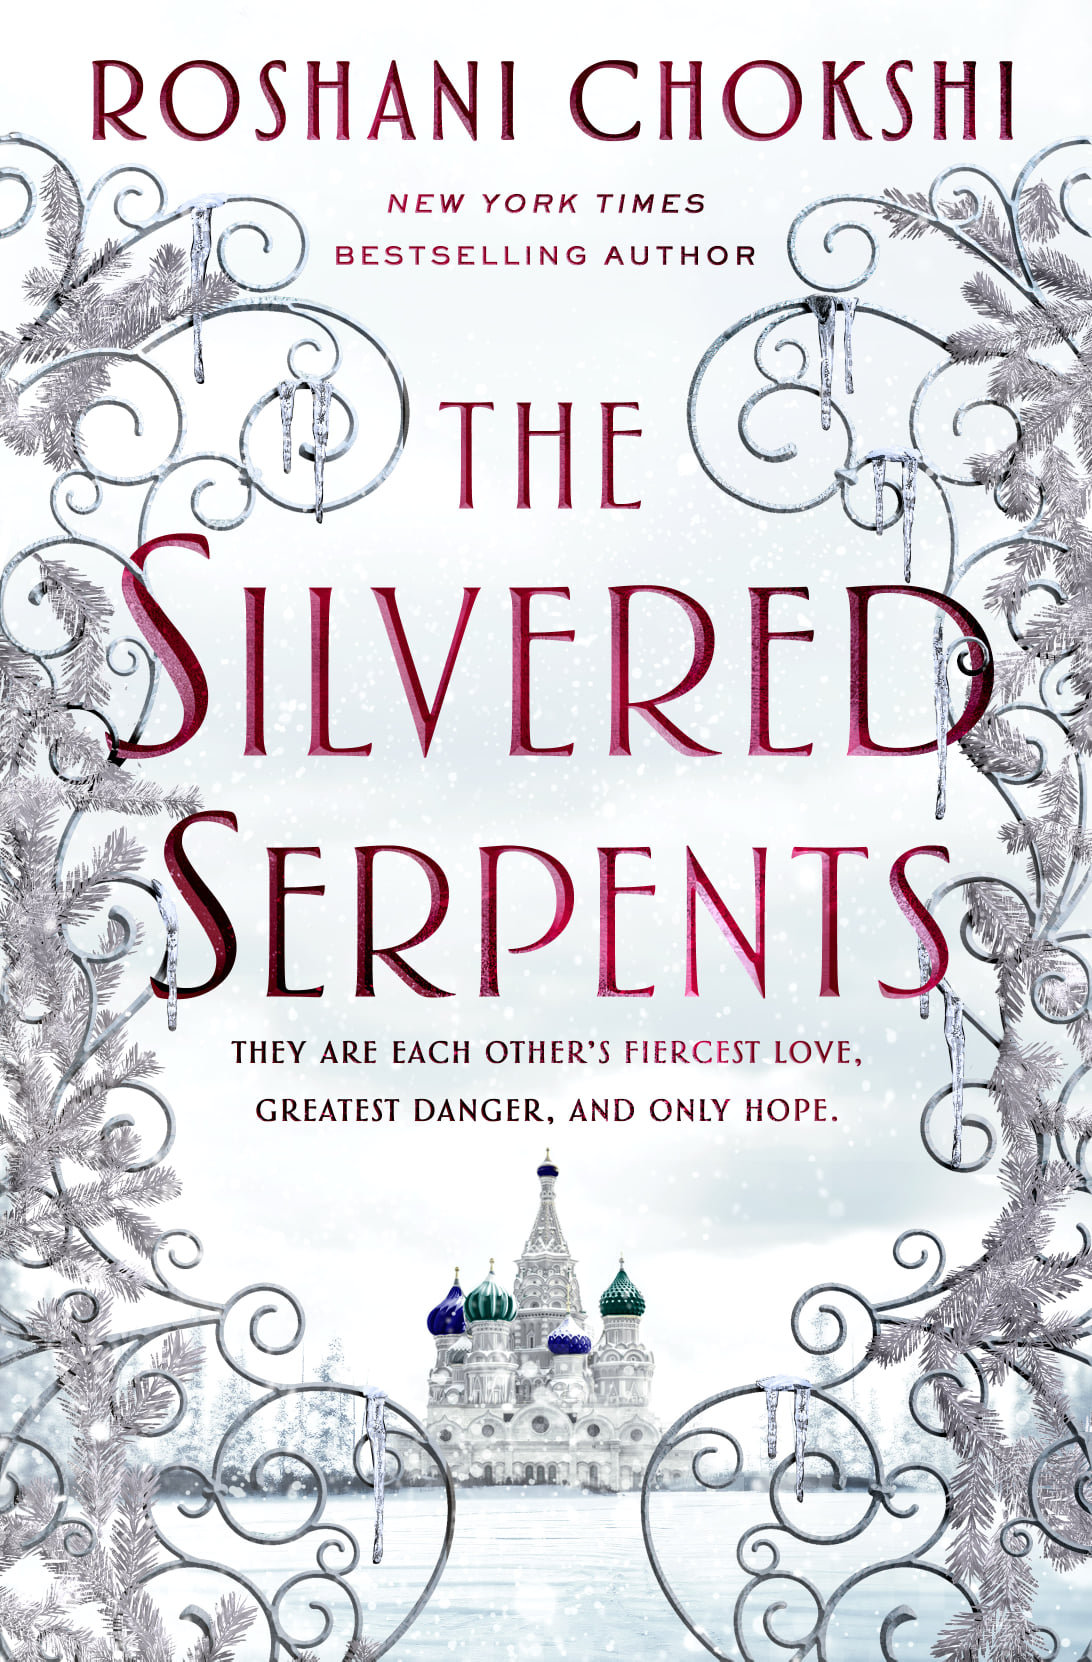 'The Silvered Serpents' by Roshani Chokshi is Out Today!